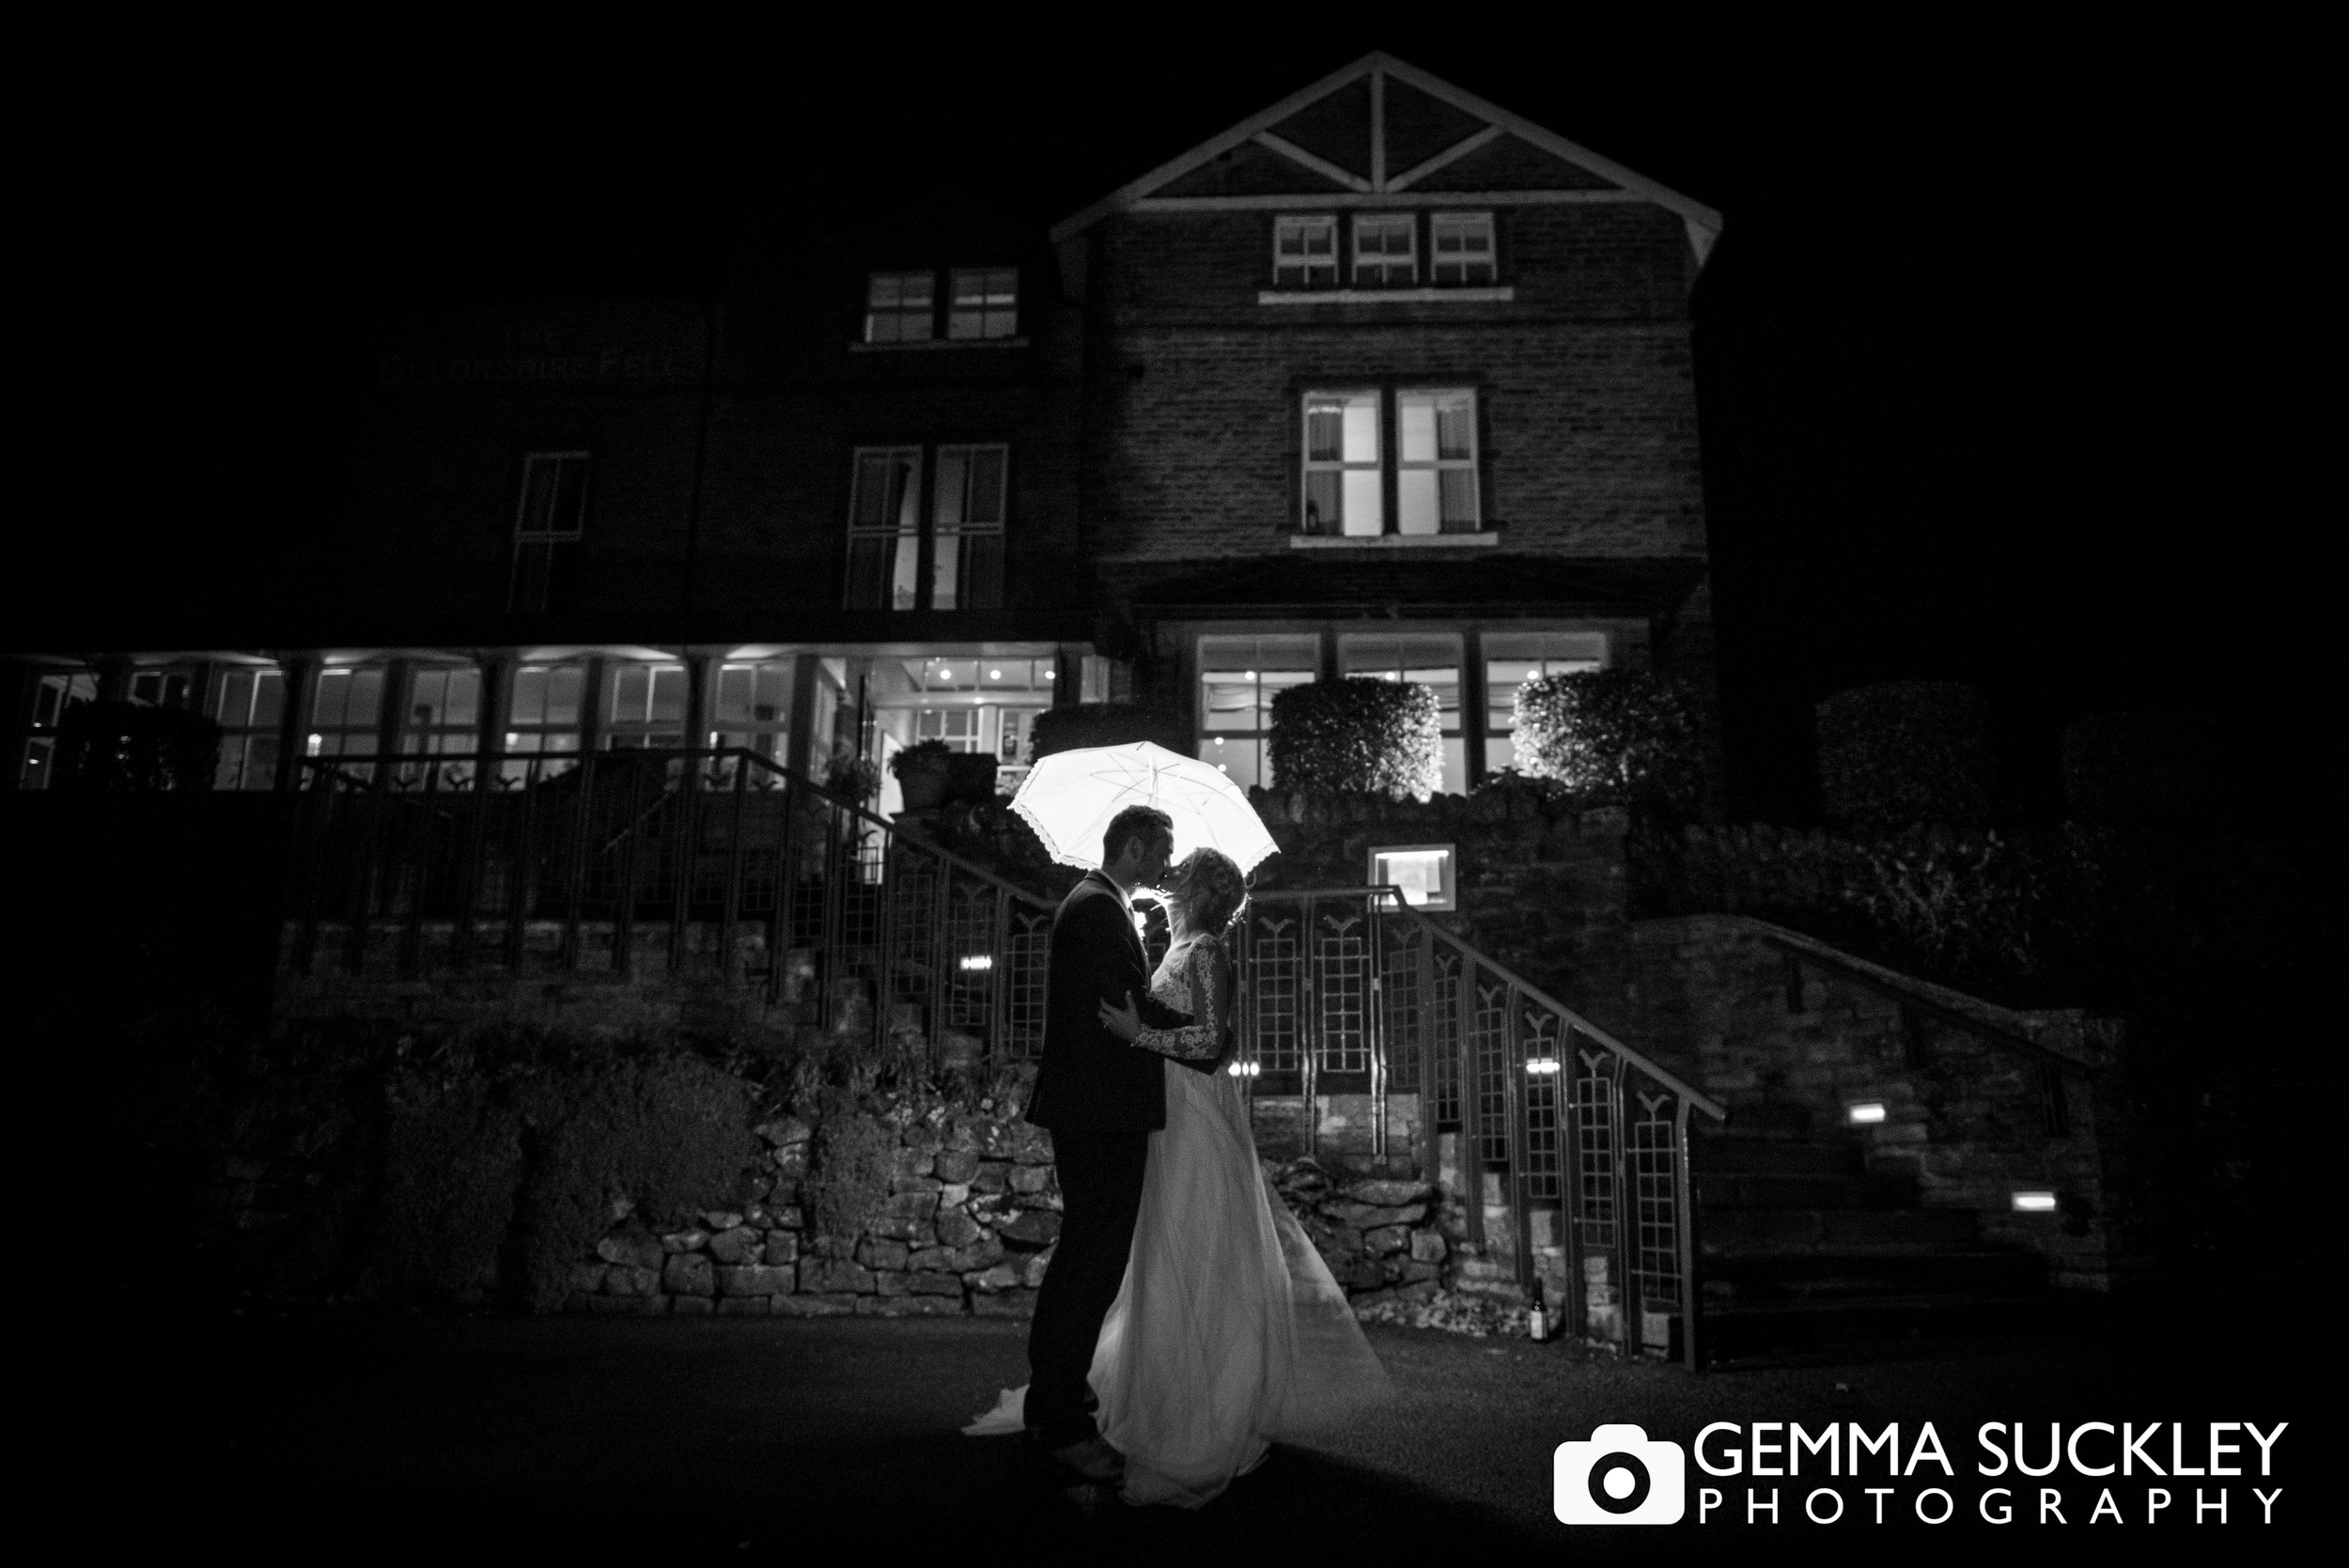 night wedding photography at the Devonshire Fell in Burnsall